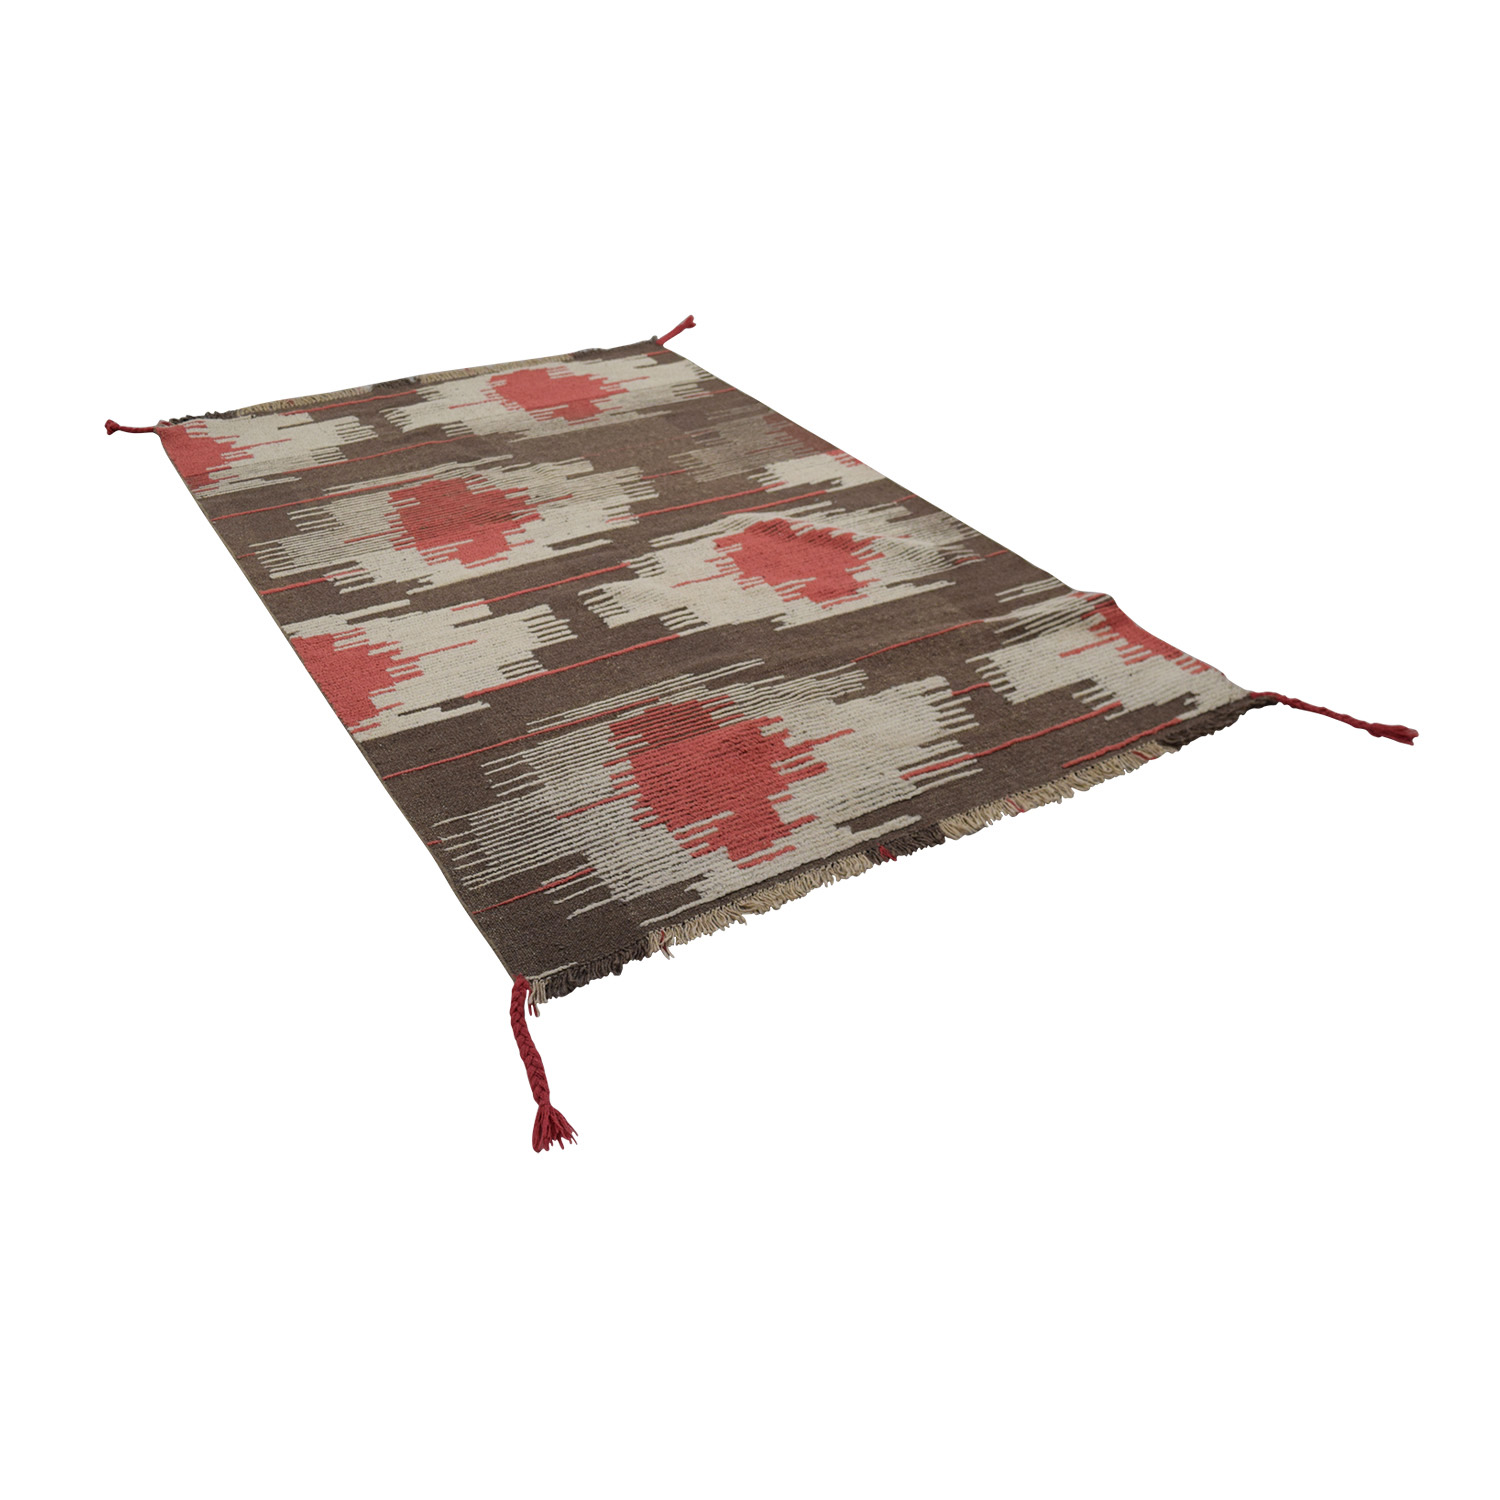 shop Obeetee Lotus Design Rug Obeetee Decor